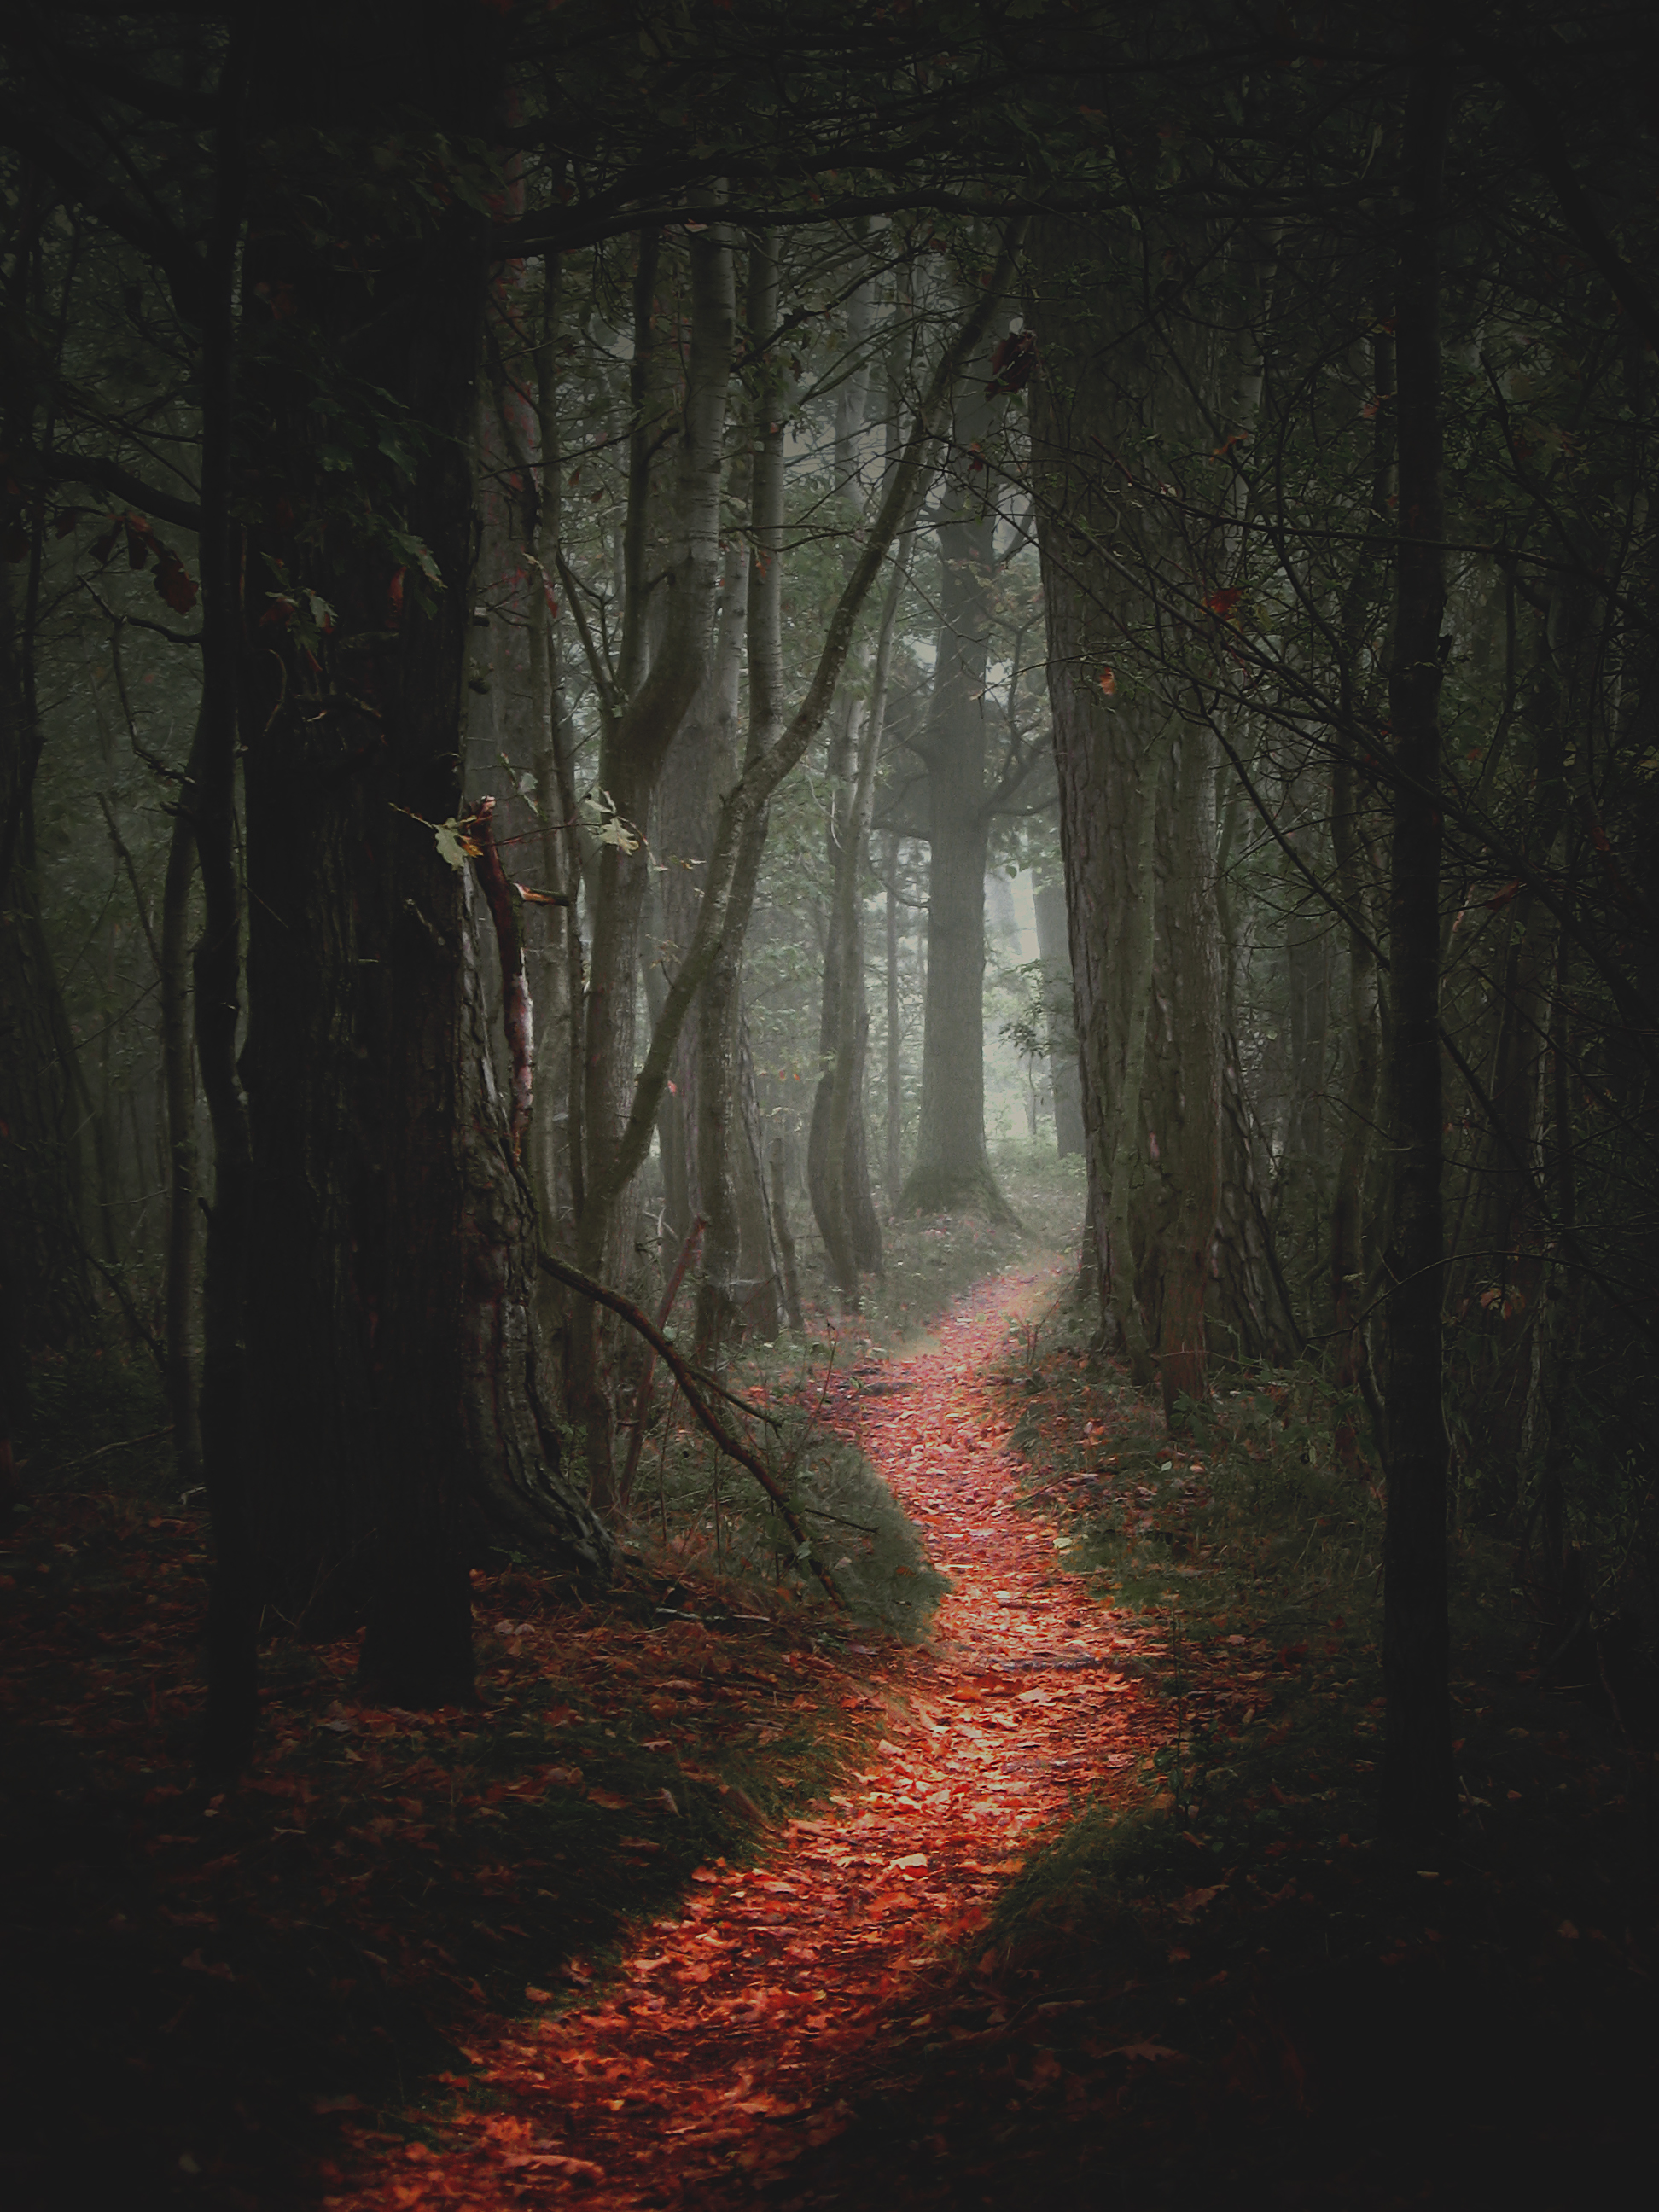 File:Path 1 on Latest Creative Writing Prompts 2